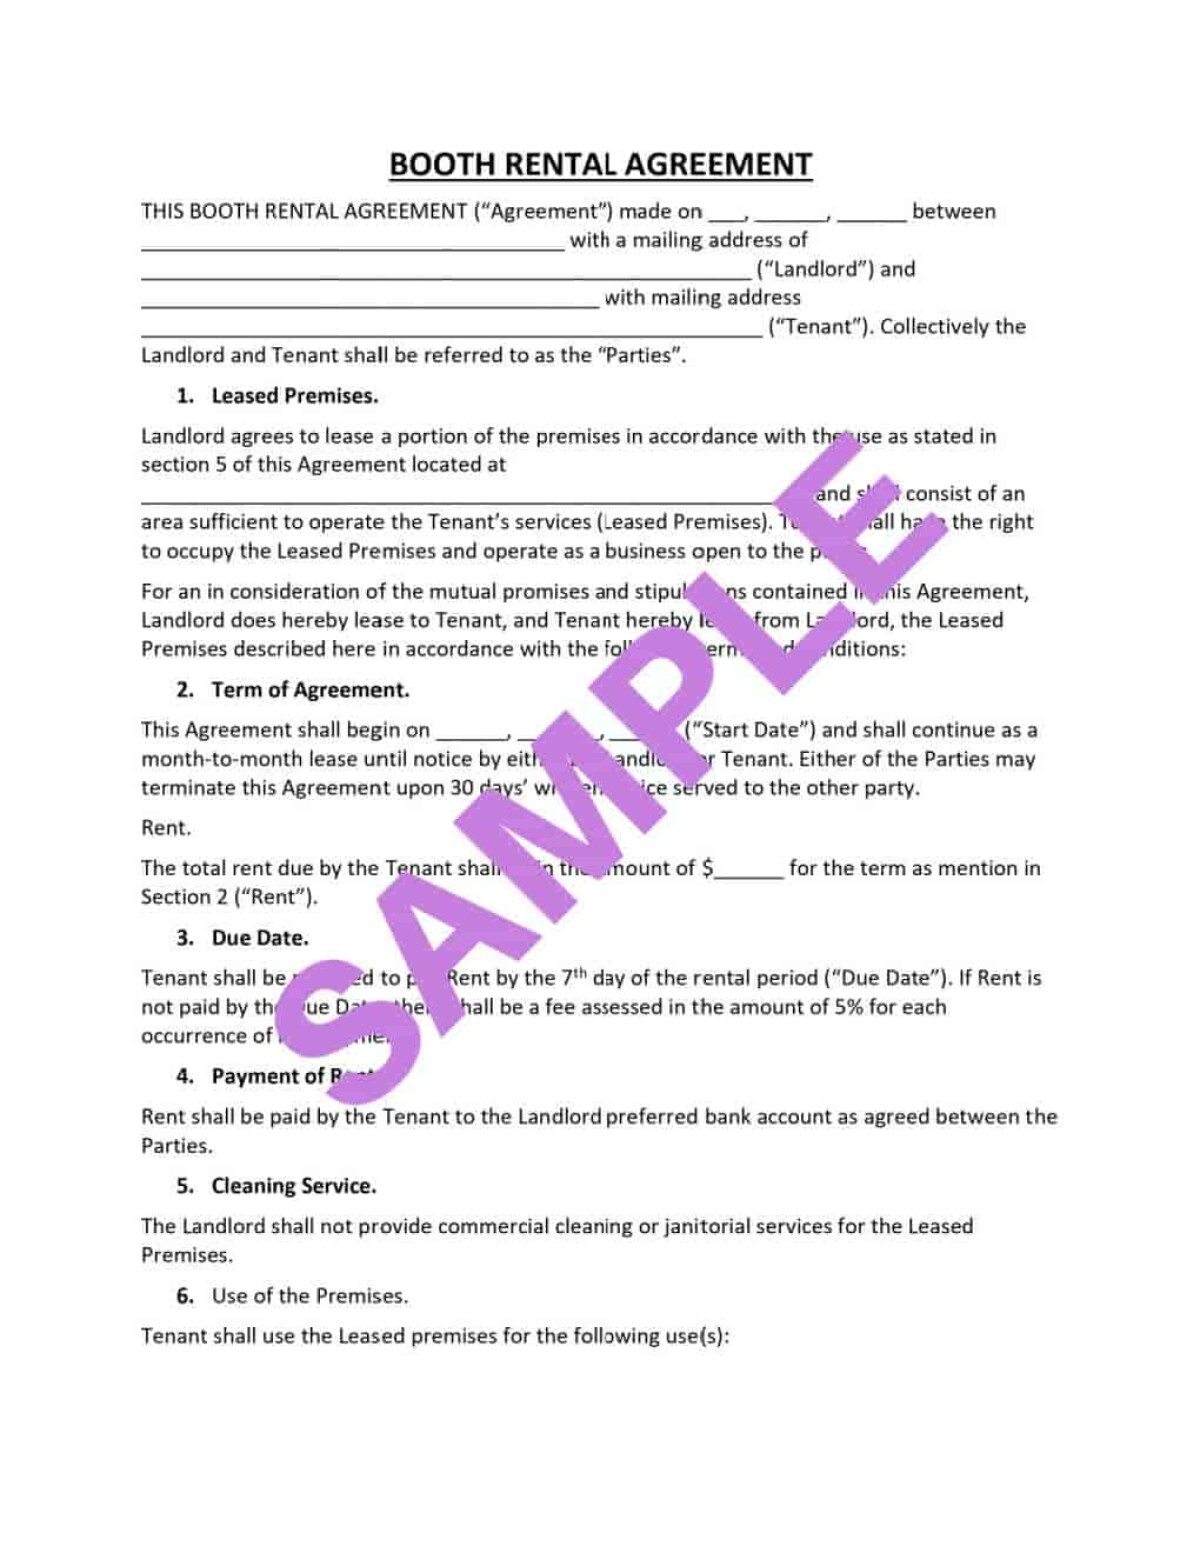 If you are running a beauty salon and you need a booth rental agreement, spreeberry has provided a free agreement here.